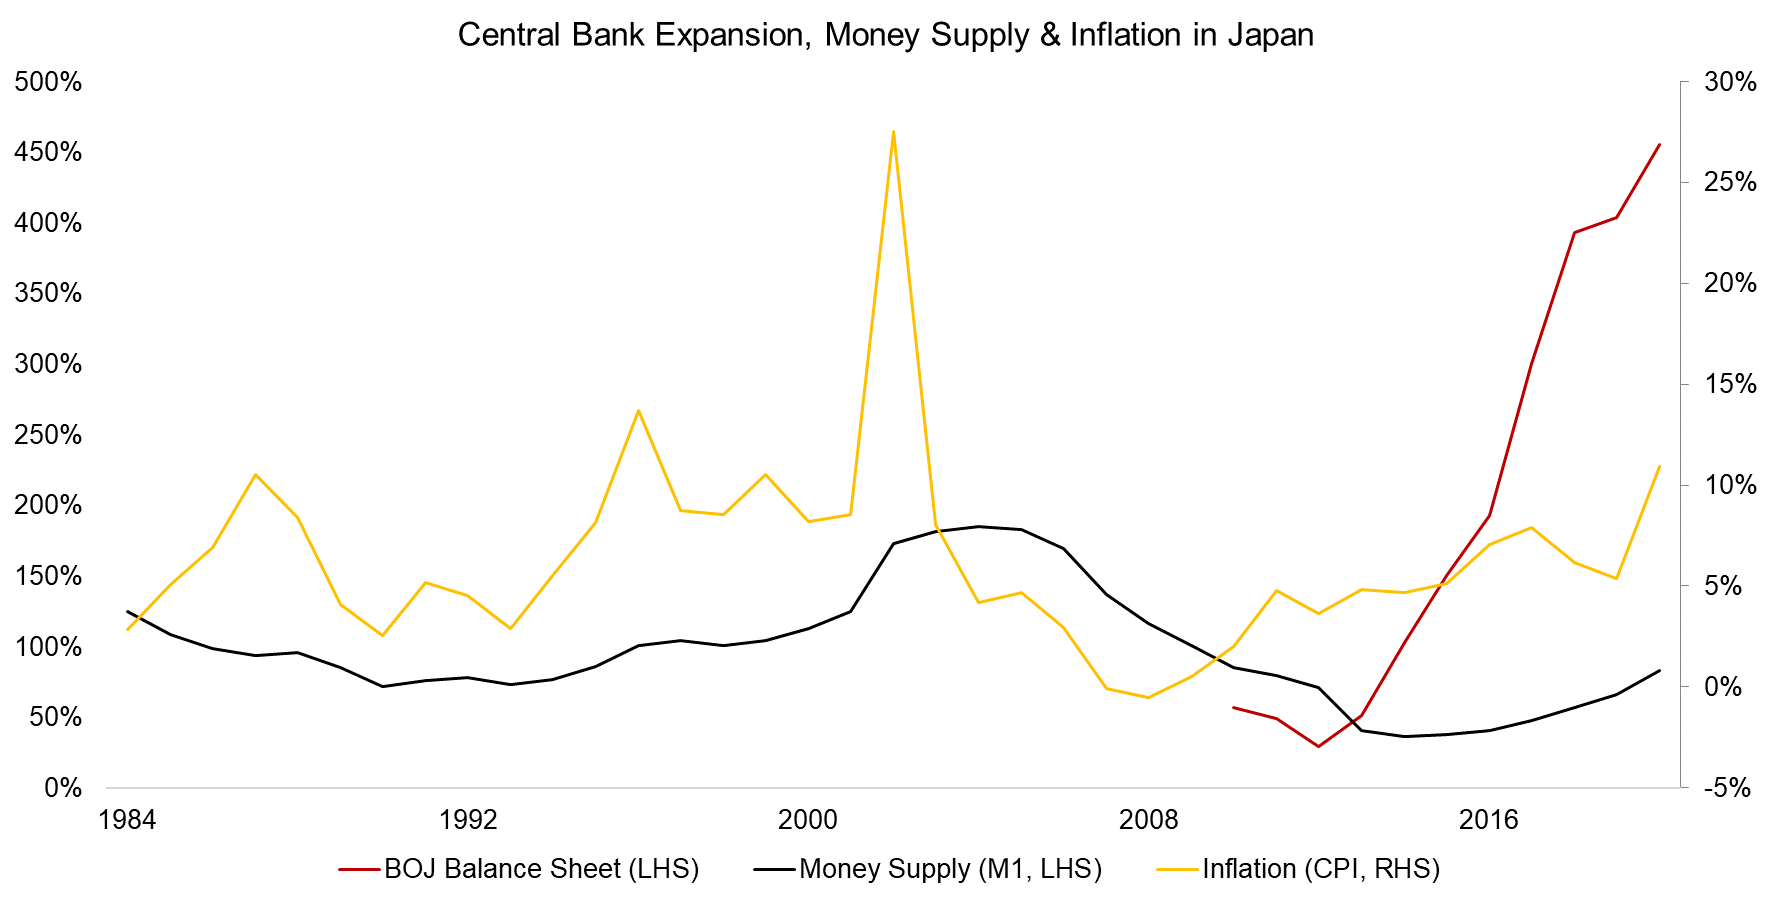 Central Bank Expansion, Money Supply & Inflation in Japan